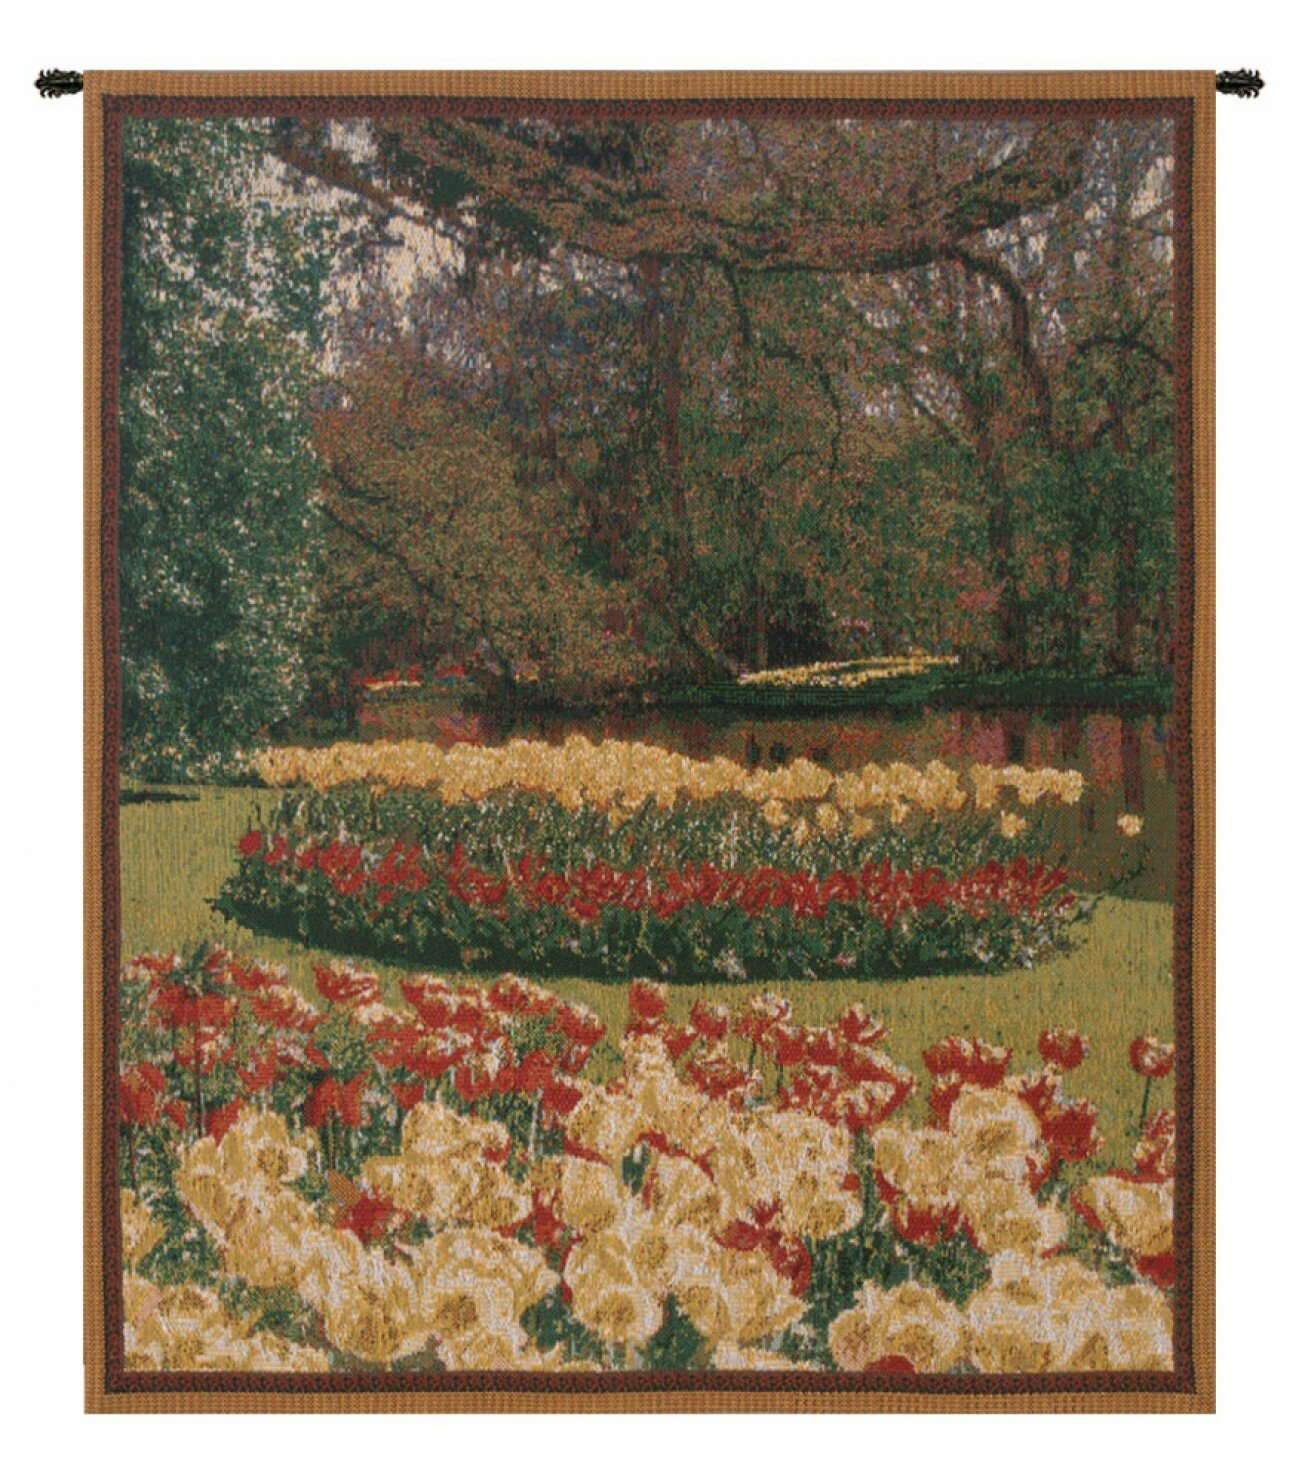 Keukenhof Ii, Mini Wall Hanging Within Best And Newest Blended Fabric Bellagio Scalinata Wall Hangings (View 7 of 20)